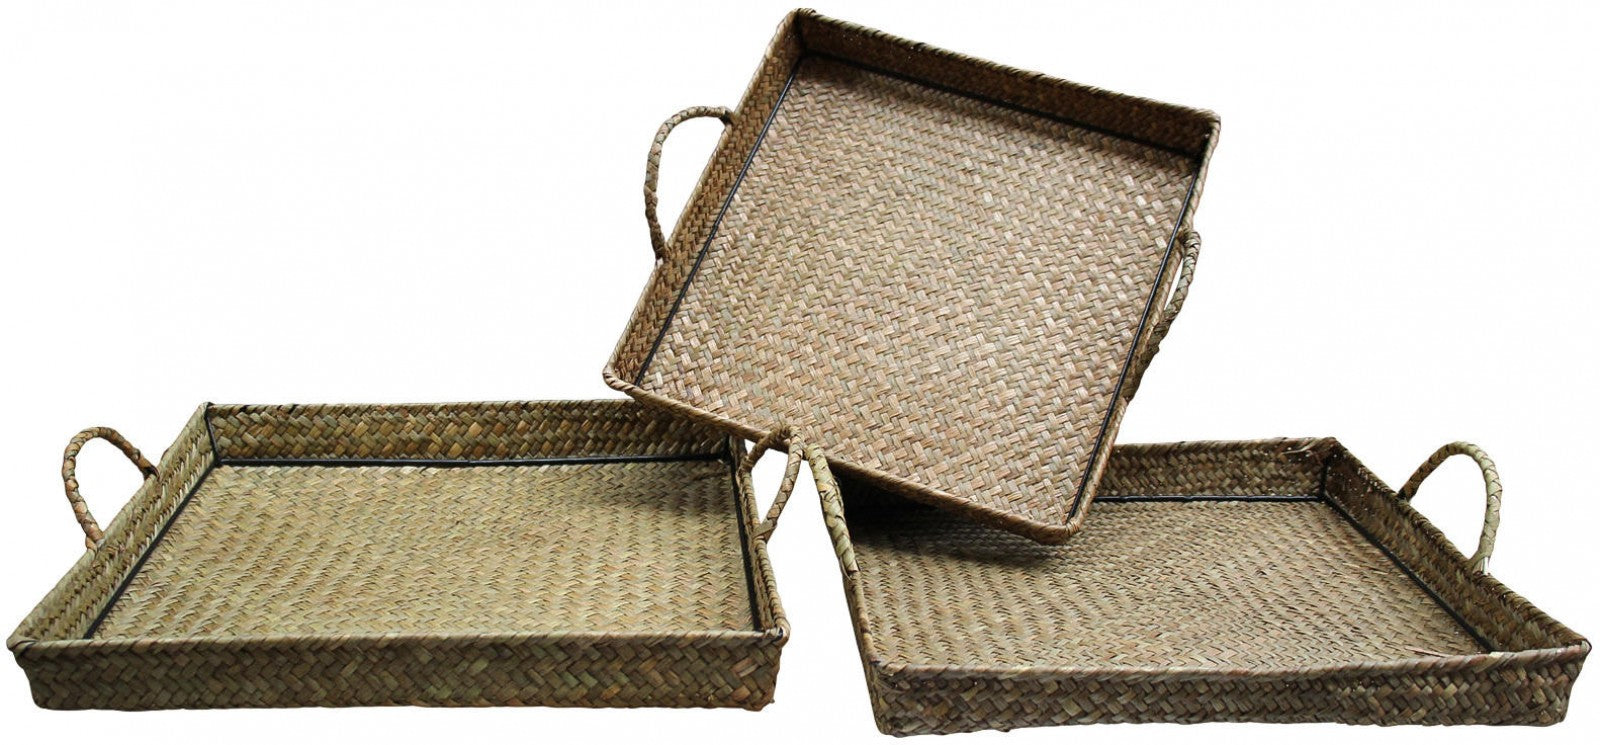 Woven Tray Set of 3 - Natural Textured Rattan